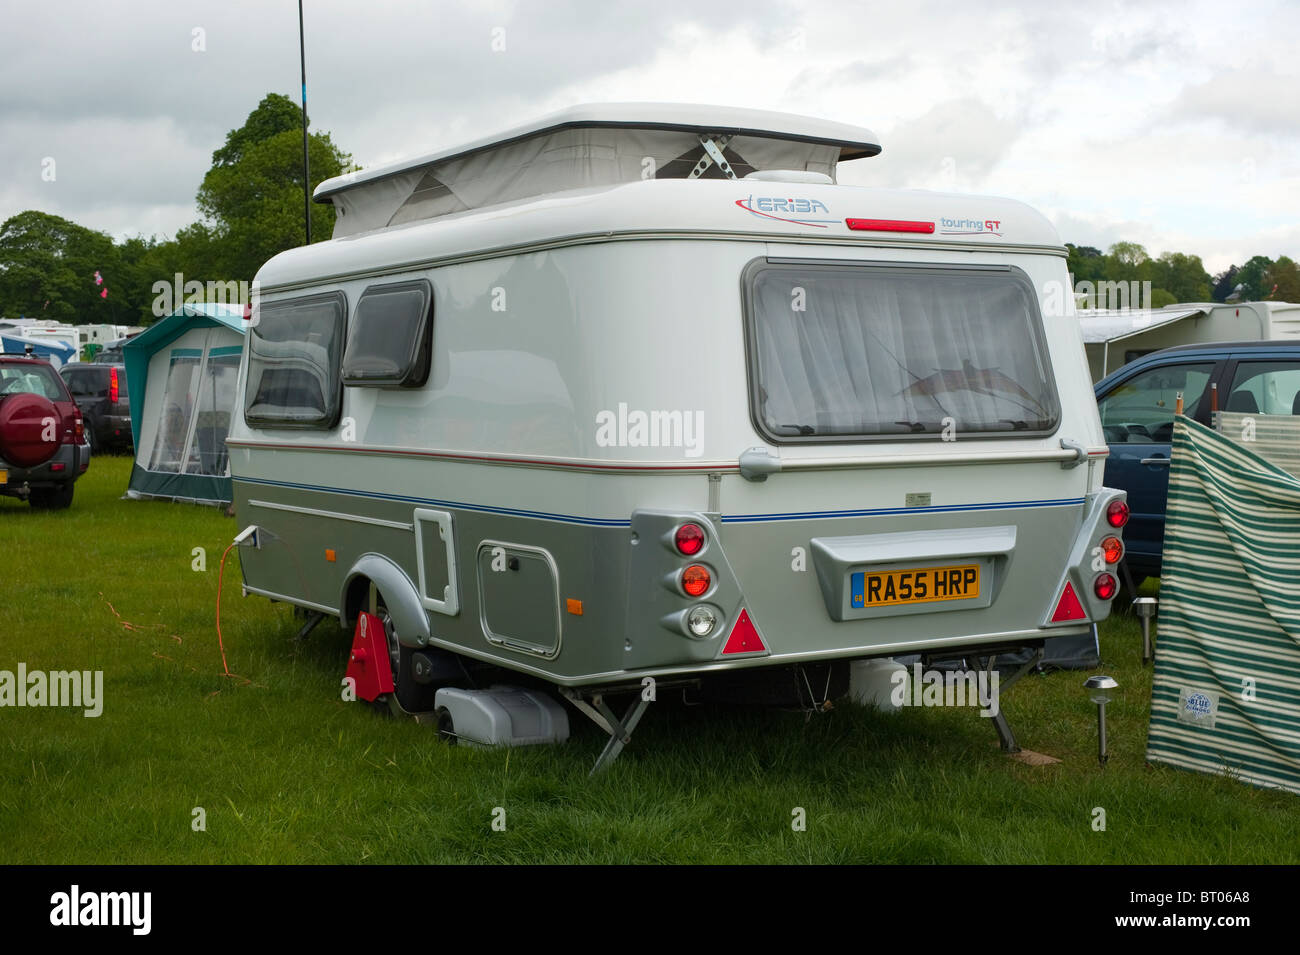 eriba touring gt pop top touring caravan stock photo royalty free image 31967104 alamy. Black Bedroom Furniture Sets. Home Design Ideas